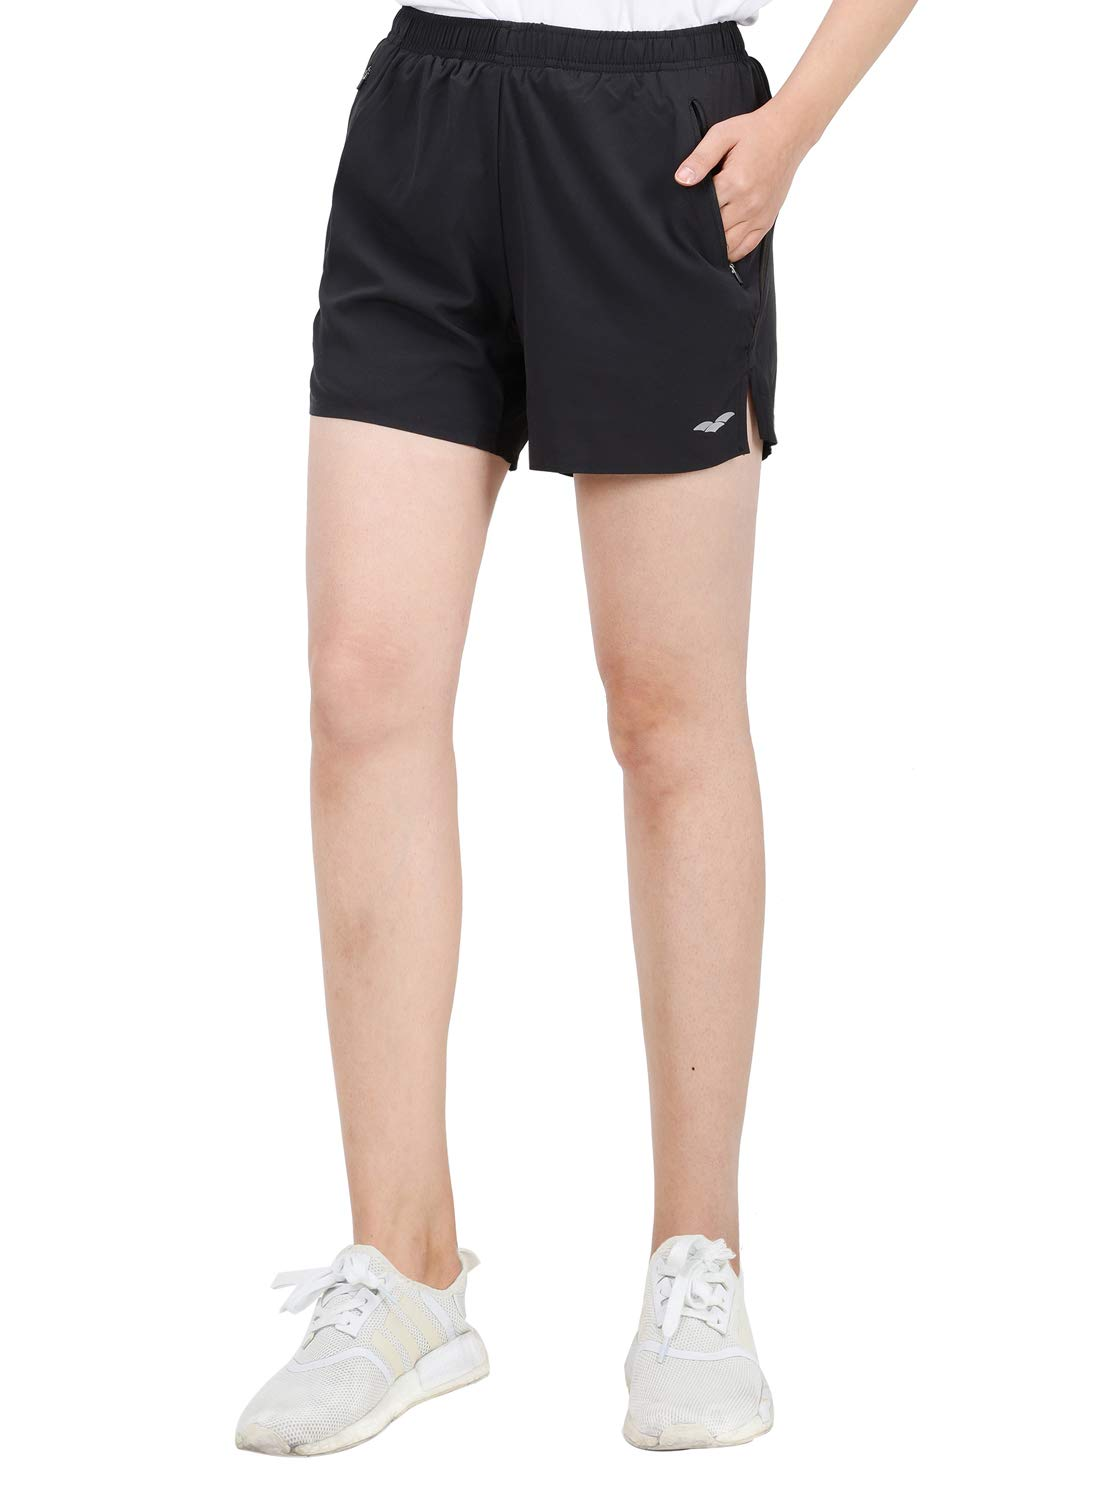 MIER Women's 5 Inches Workout Running Shorts Quick Dry Athletic Shorts with Zipper Pockets, Water Resistant, Black